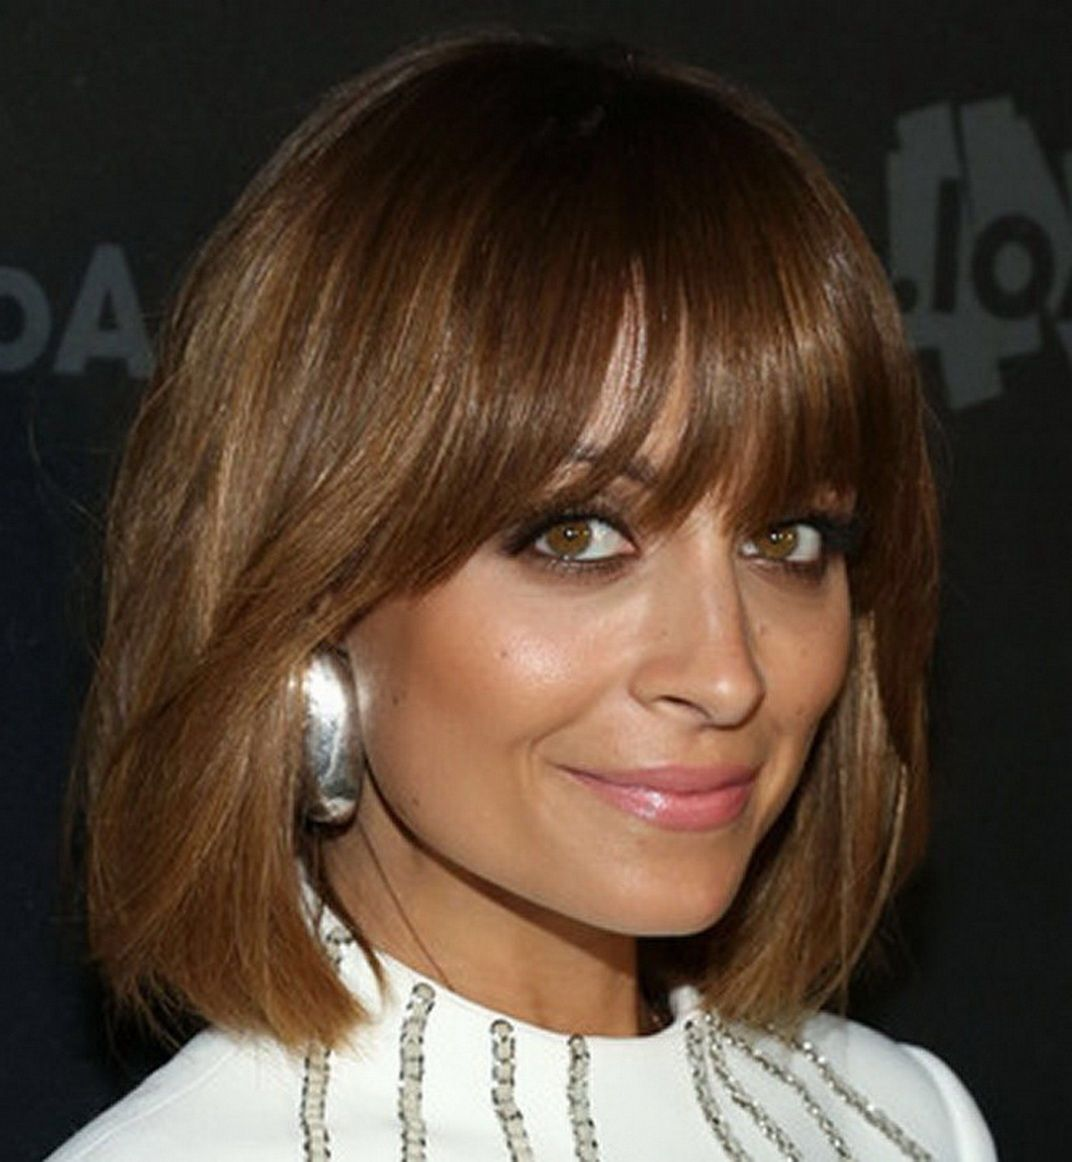 Populaire Straight short light brown hair with bangs - Capelli corti lisci  ZF67